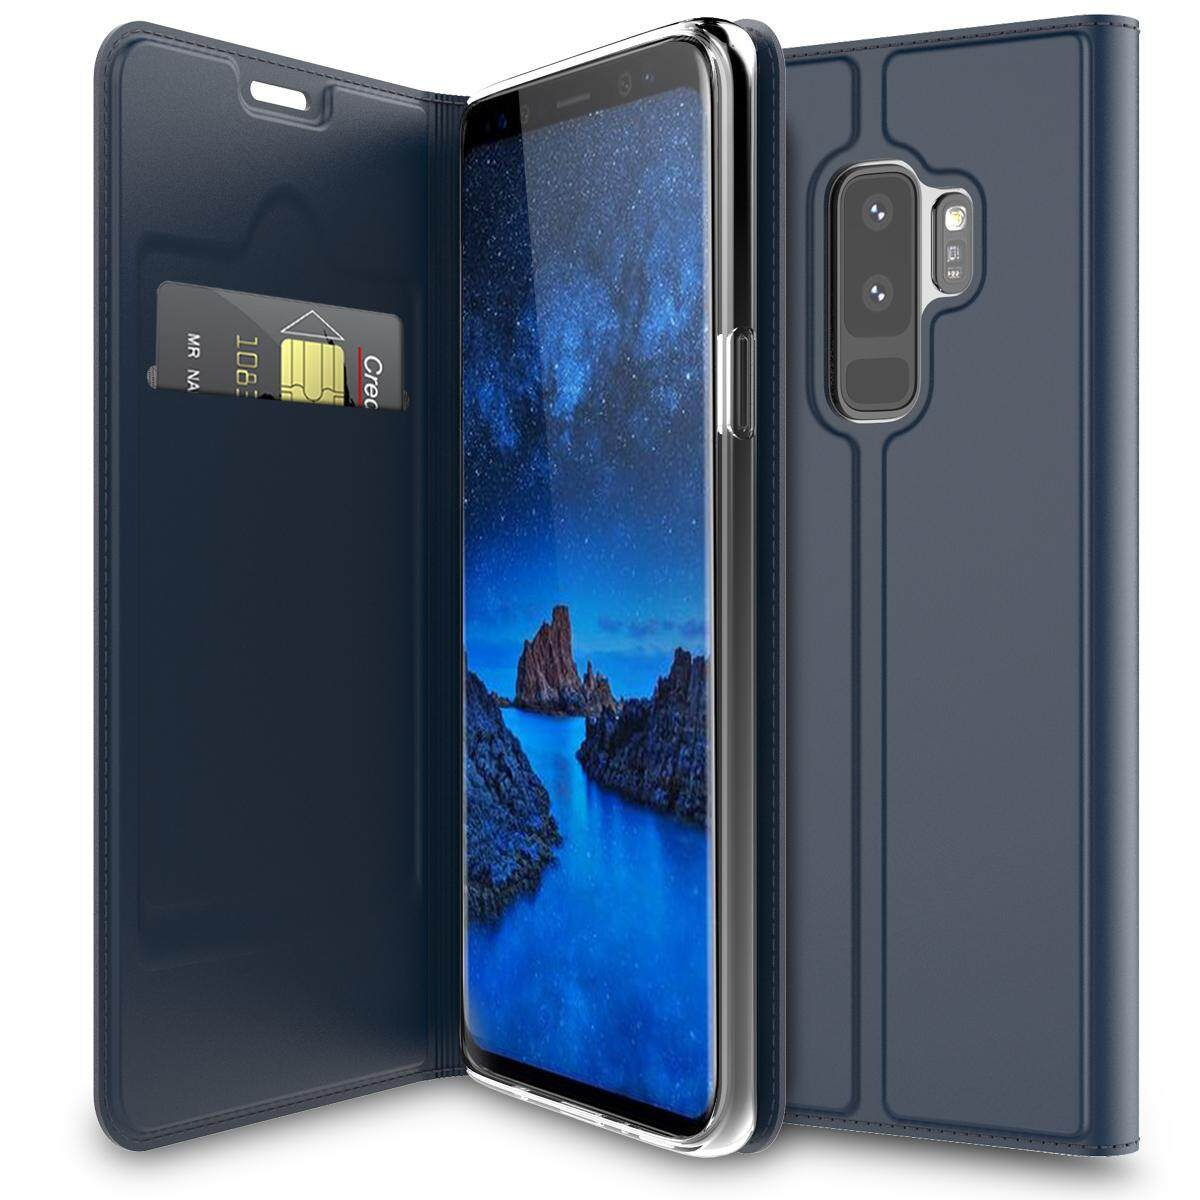 Luxury Leather Case Slim Book Design Magnetic Flip Stand Protective Cover With Card Slot For Samsung Galaxy S9 Plus Intl Coupon Code